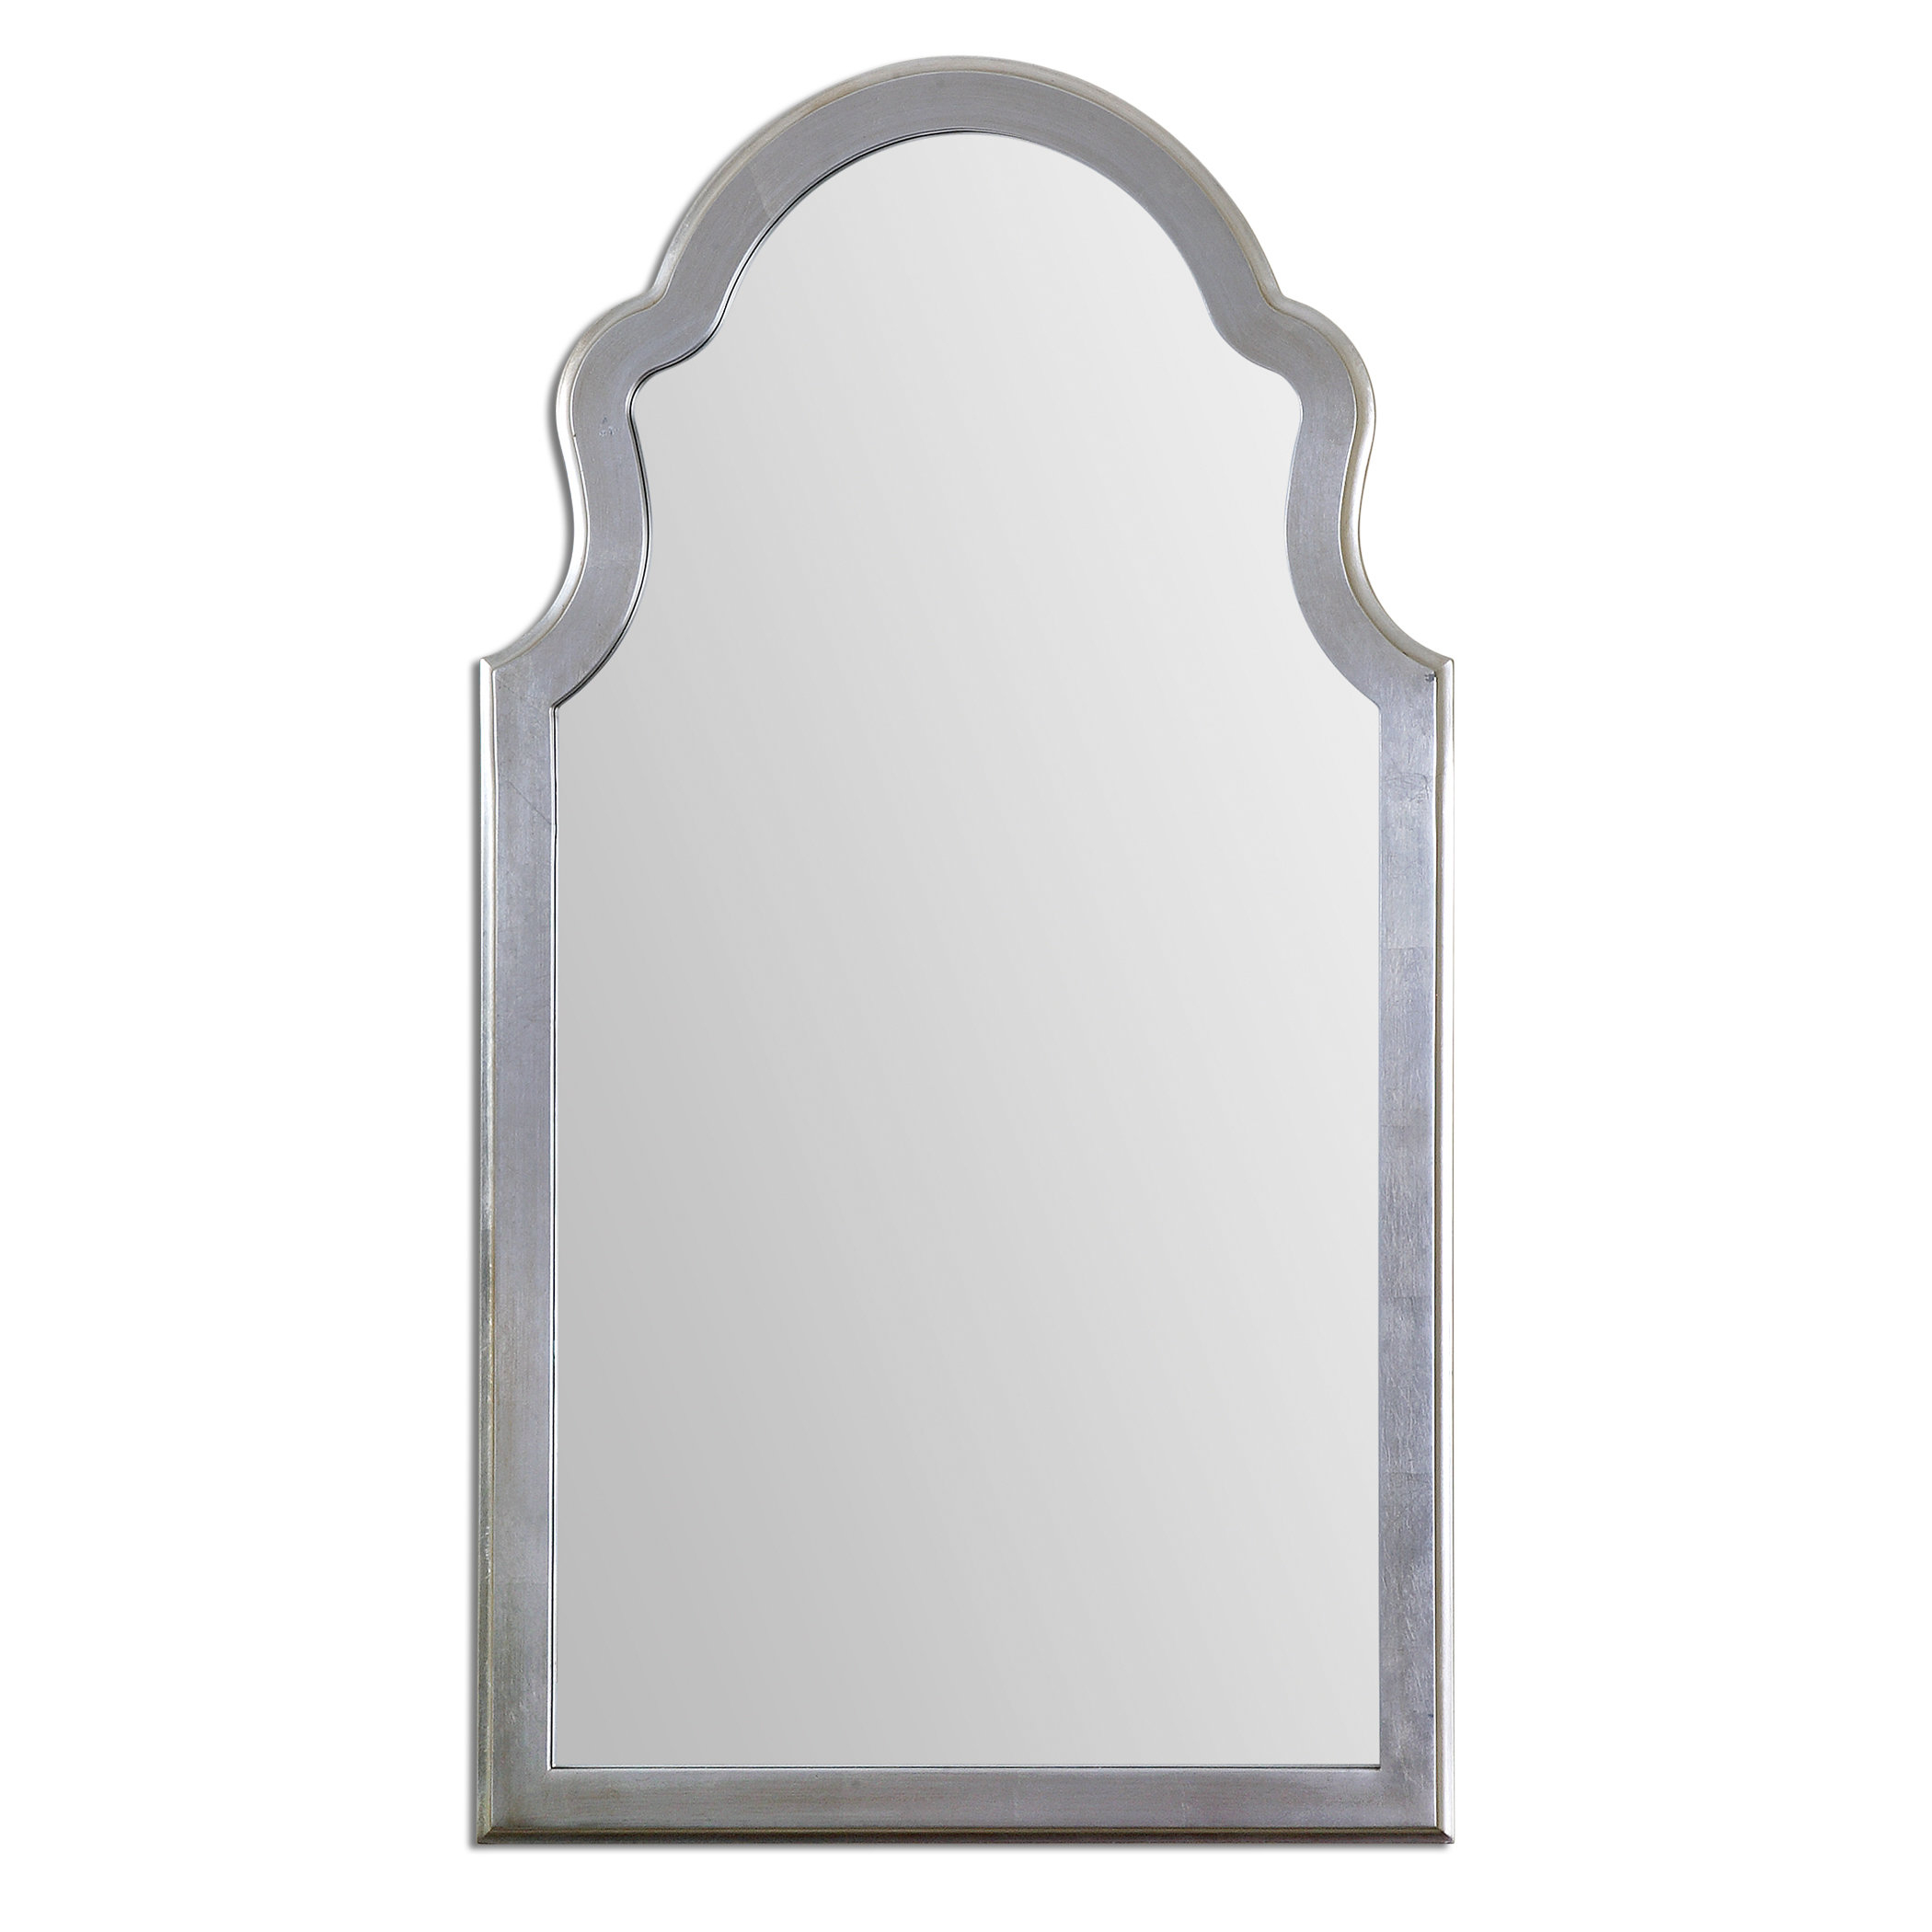 Farmhouse & Rustic Arch / Crowned Top Wall & Accent Mirrors In Dariel Tall Arched Scalloped Wall Mirrors (Photo 14 of 20)